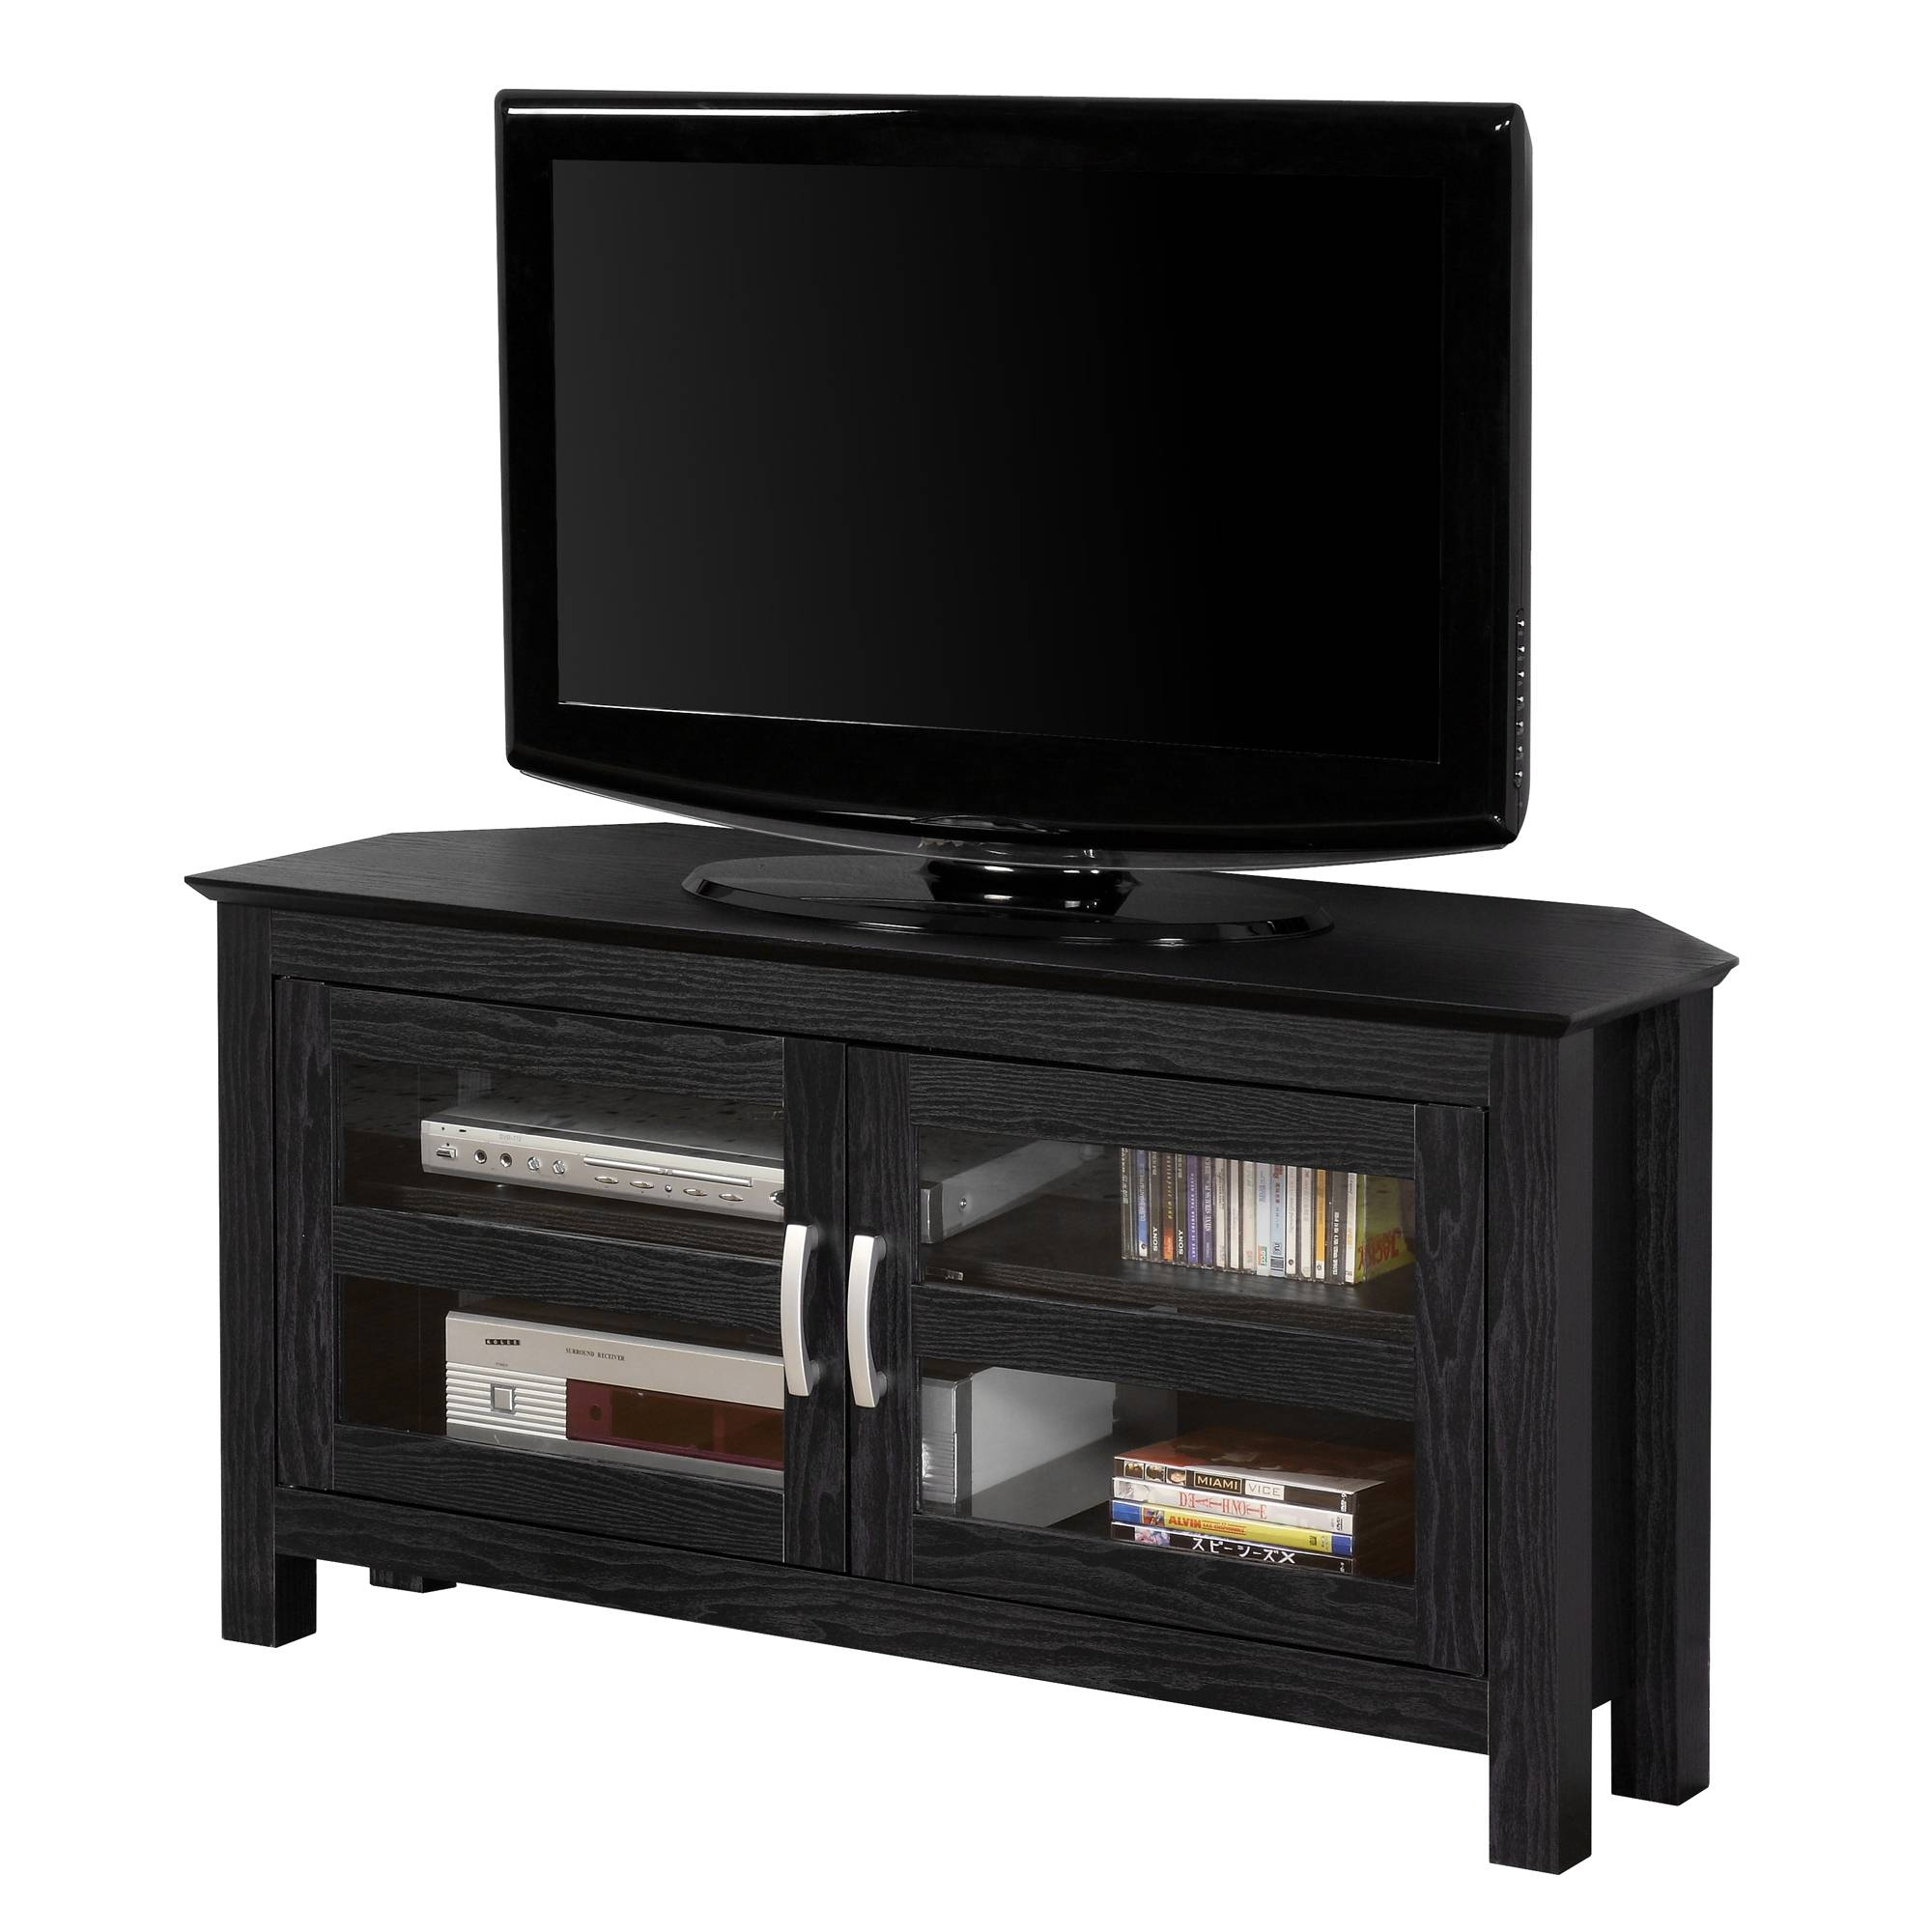 Wood Entertainment Center Corner Tv Stand Stereo Cabinet 44 for Wood Tv Entertainment Stands (Image 15 of 15)